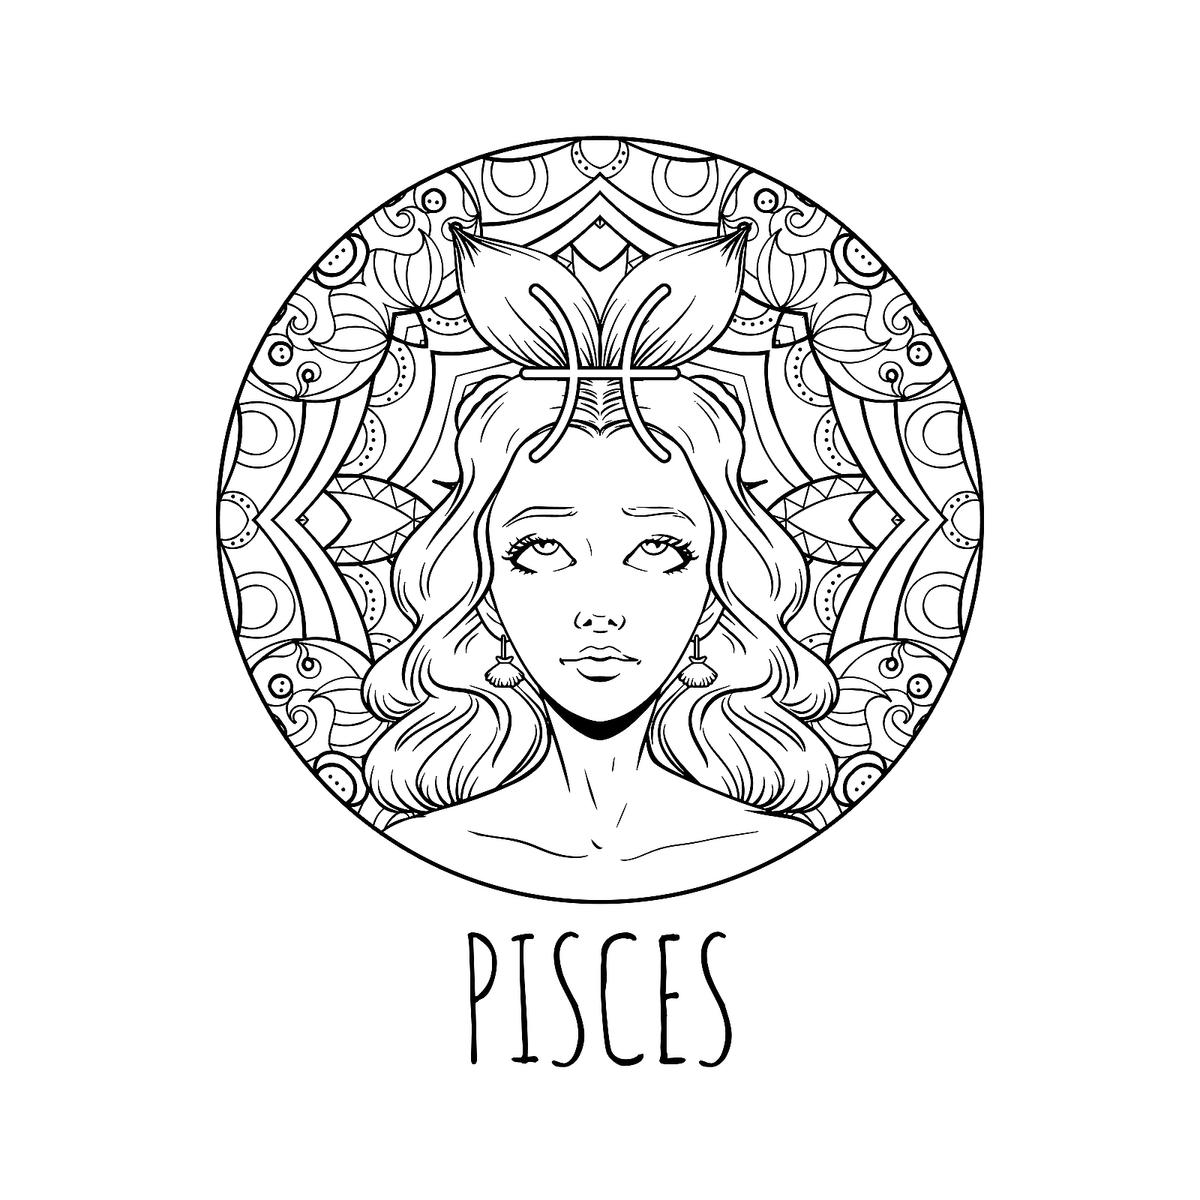 Coloring Page Book For Adults Square Format Zodiac Signs Wheel ... | 1200x1200